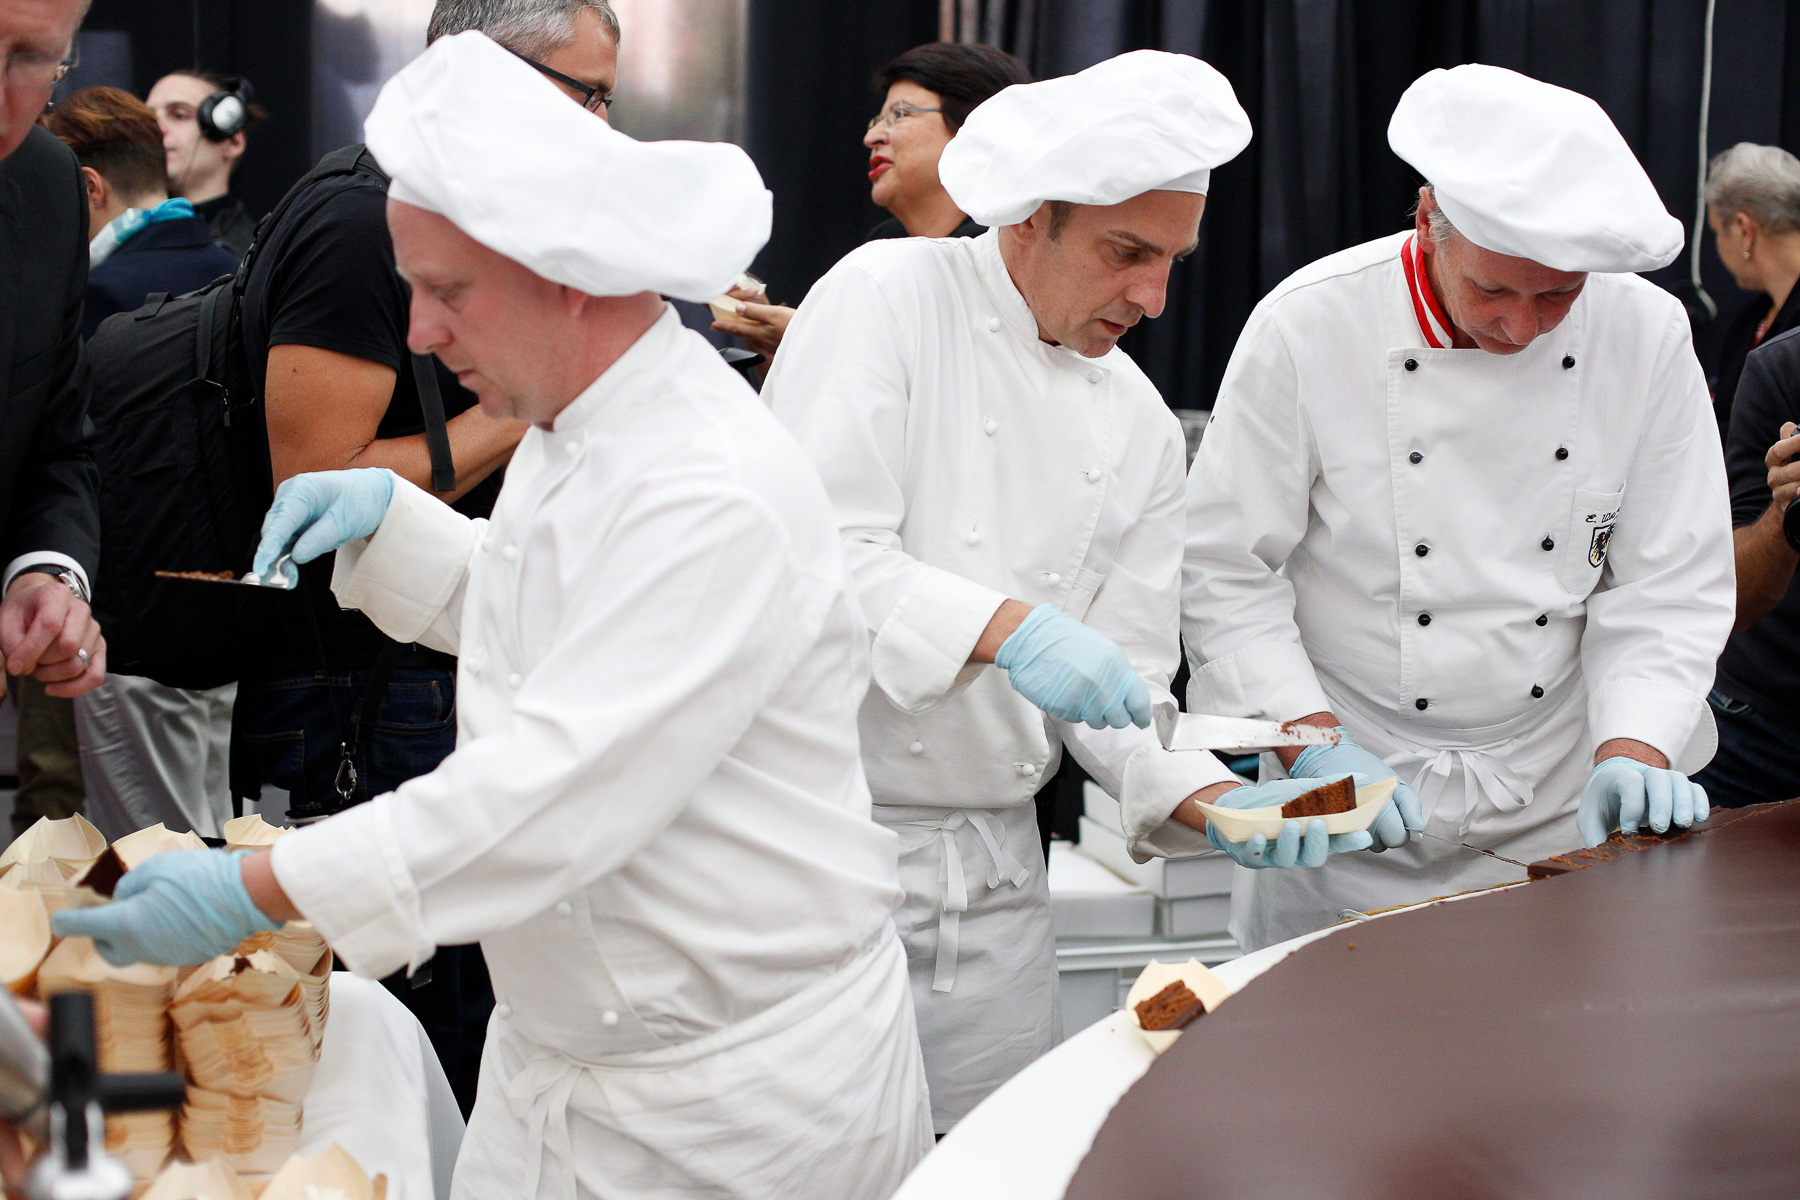 Confectioners cut portions of the world's largest original Sacher-torte to serve to the citizens in Ljubljana, Slovenia, Sept. 21, 2016. The largest original Sacher-cake was made to mark the ending of the Vienna Days in Ljubljana.